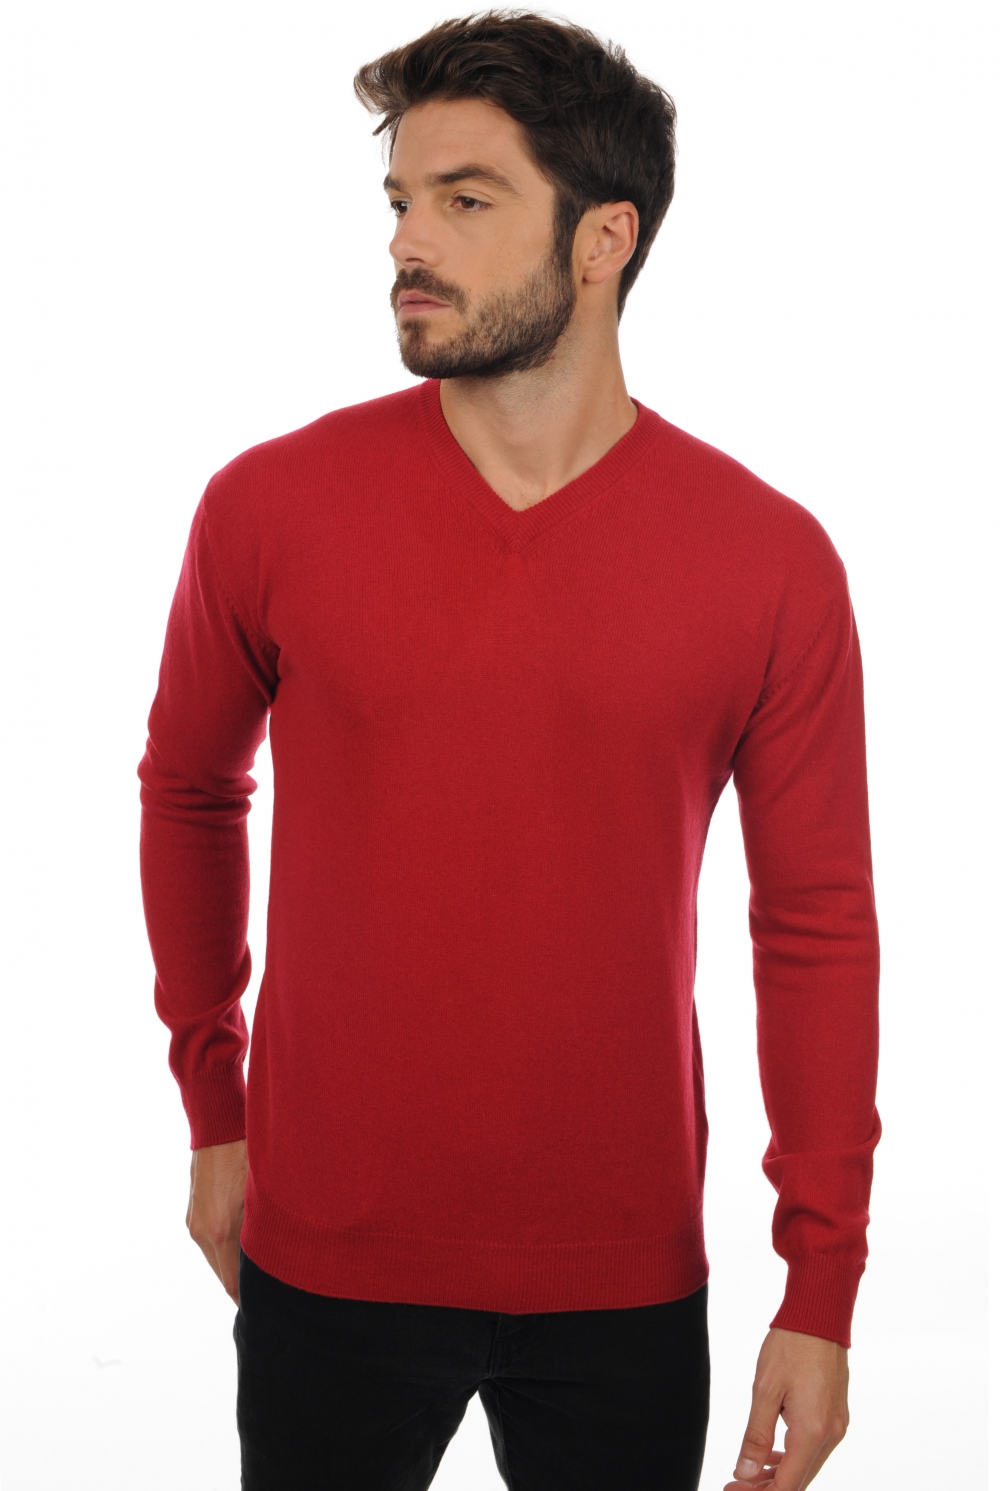 cashmere men v necks maddox blood red m